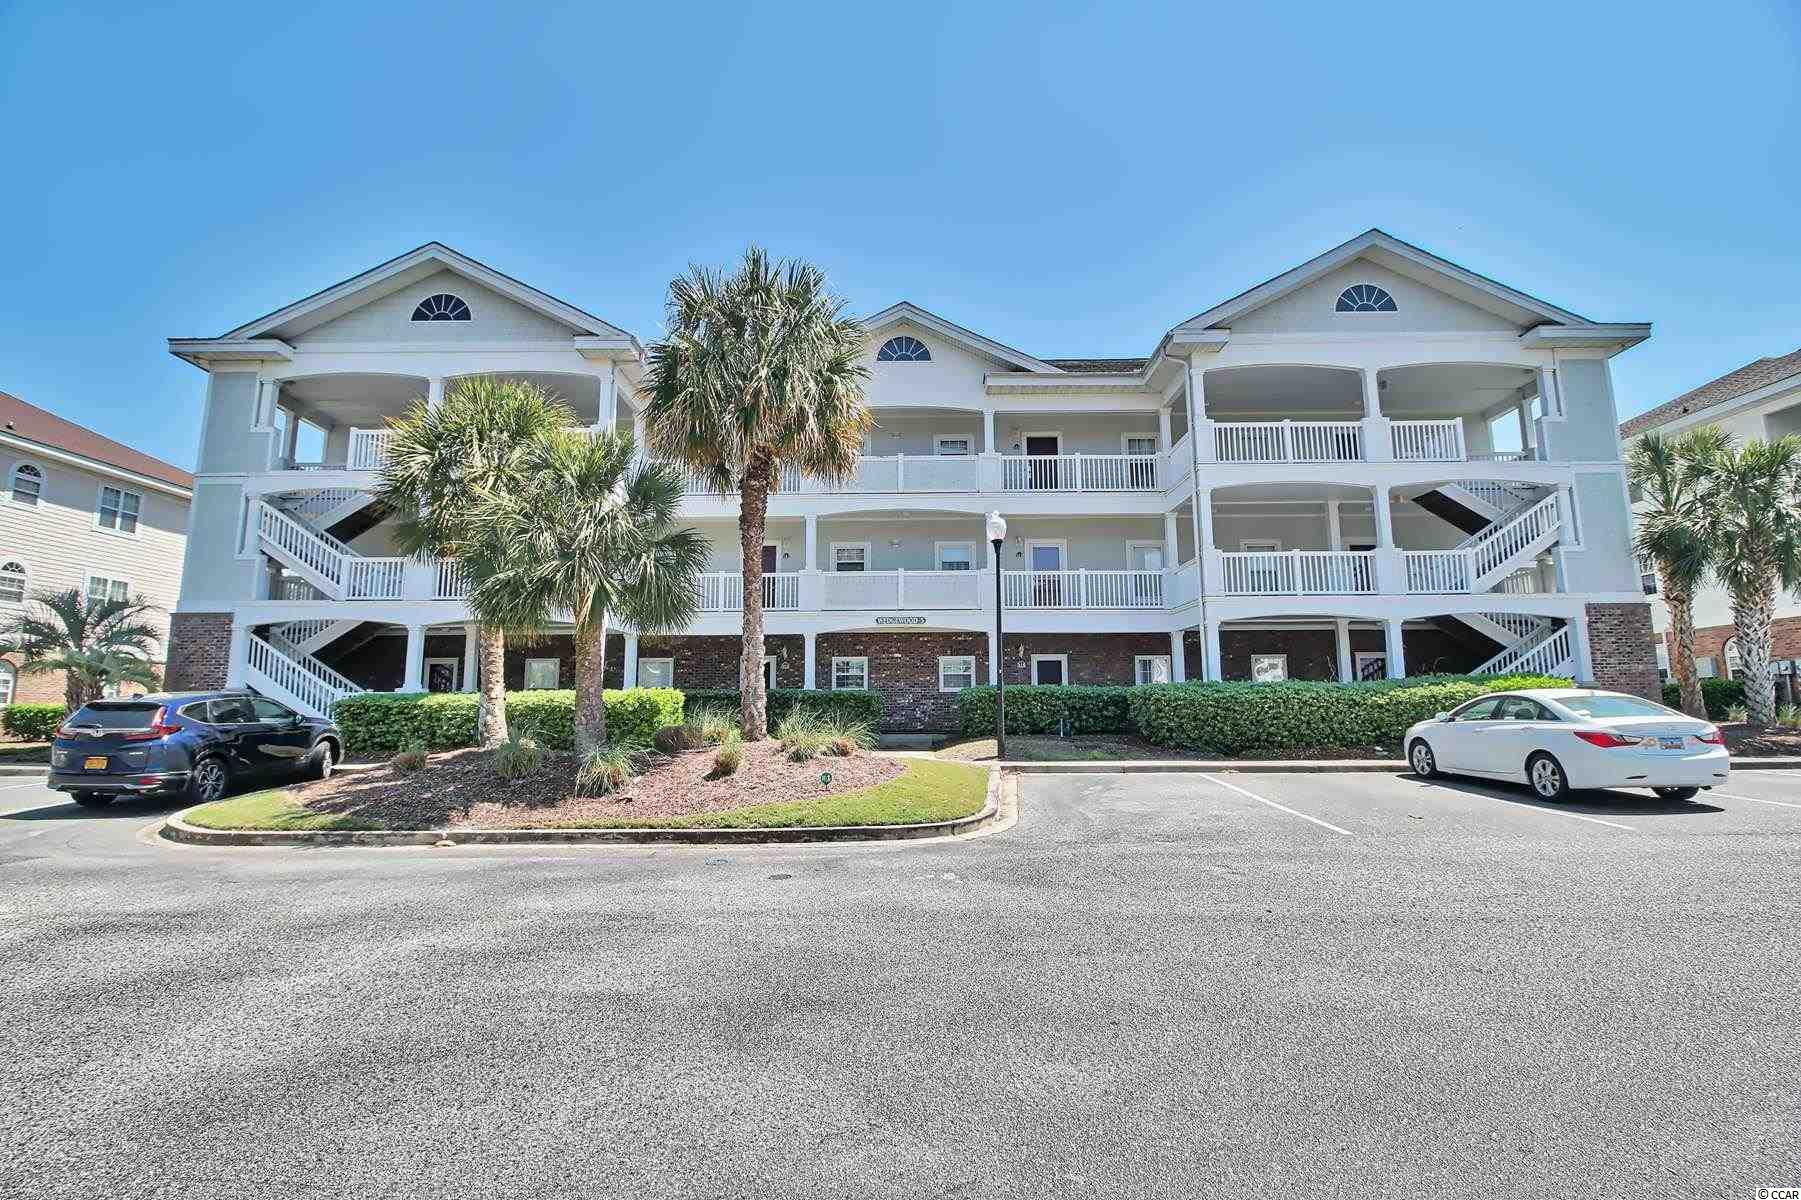 This is a beautiful two bedroom two bath ground floor unit in Wedgewood @ Barefoot Resort. This unit has nice upgrades throughout. SS appliances, solid surface counter tops, tiled back splash, tiled screened in patio. Great view of #15 on the Greg Norman Golf Course. This unit was not on a rental program.